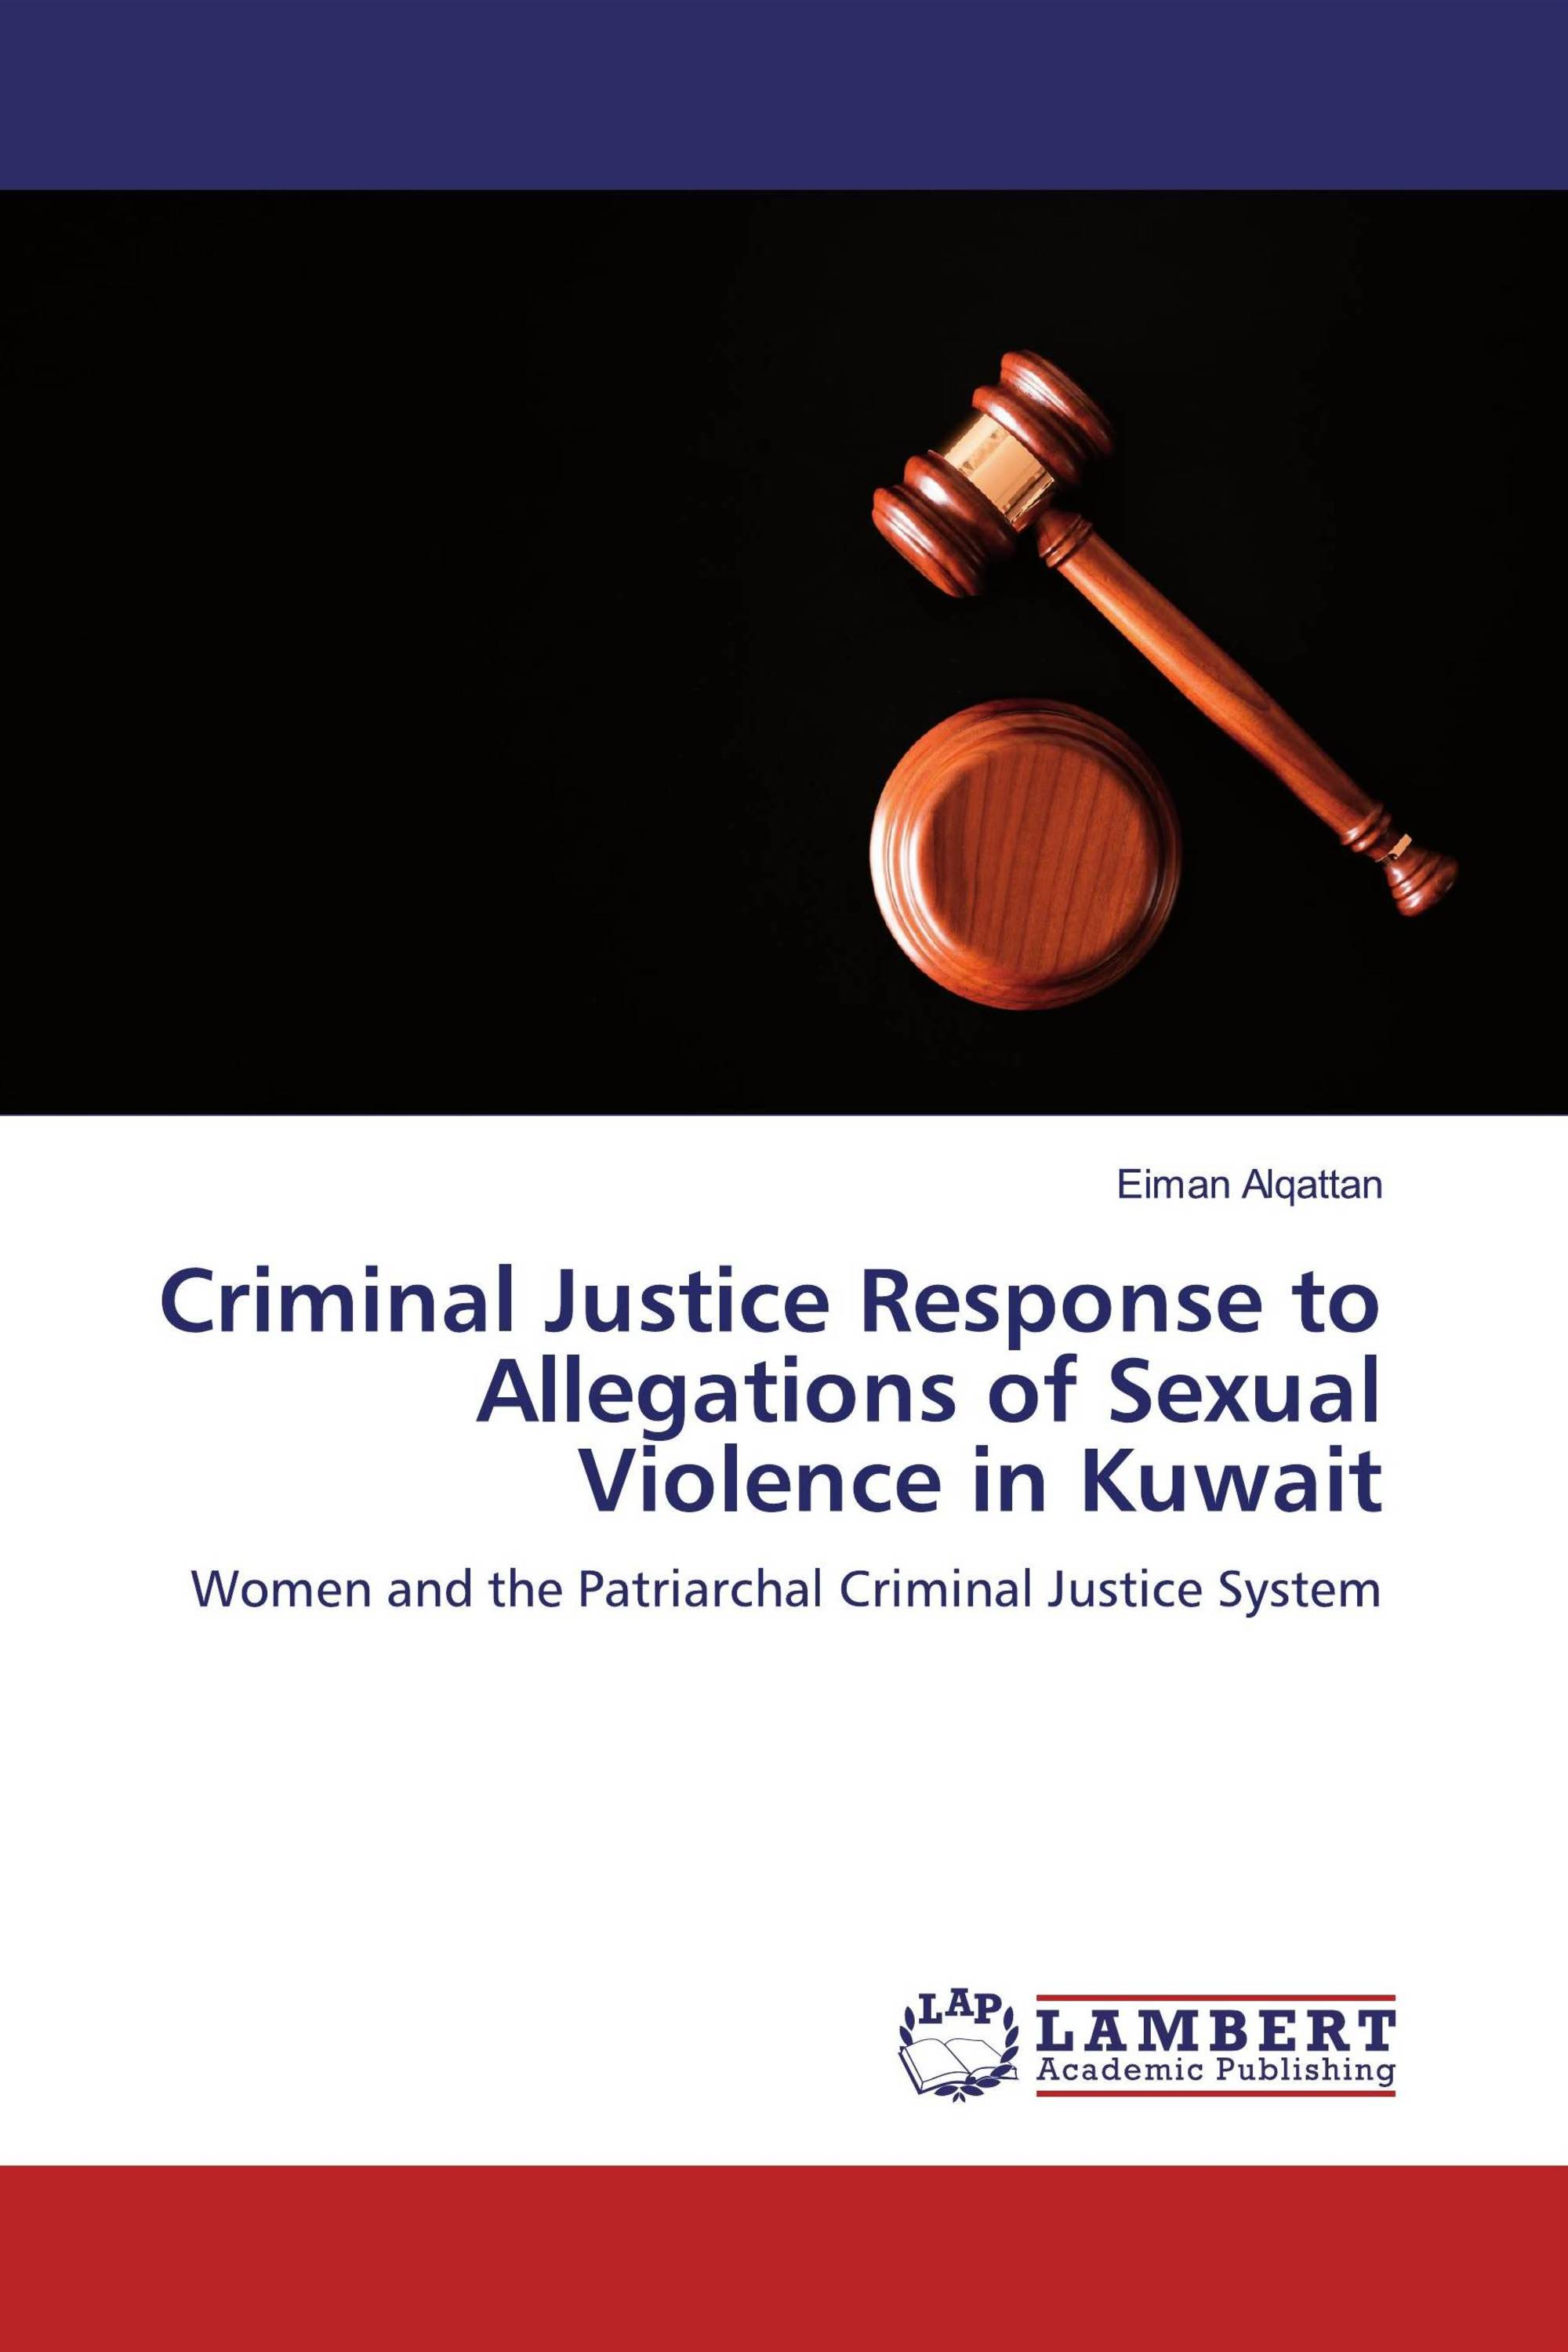 Criminal Justice Response to Allegations of Sexual Violence in Kuwait